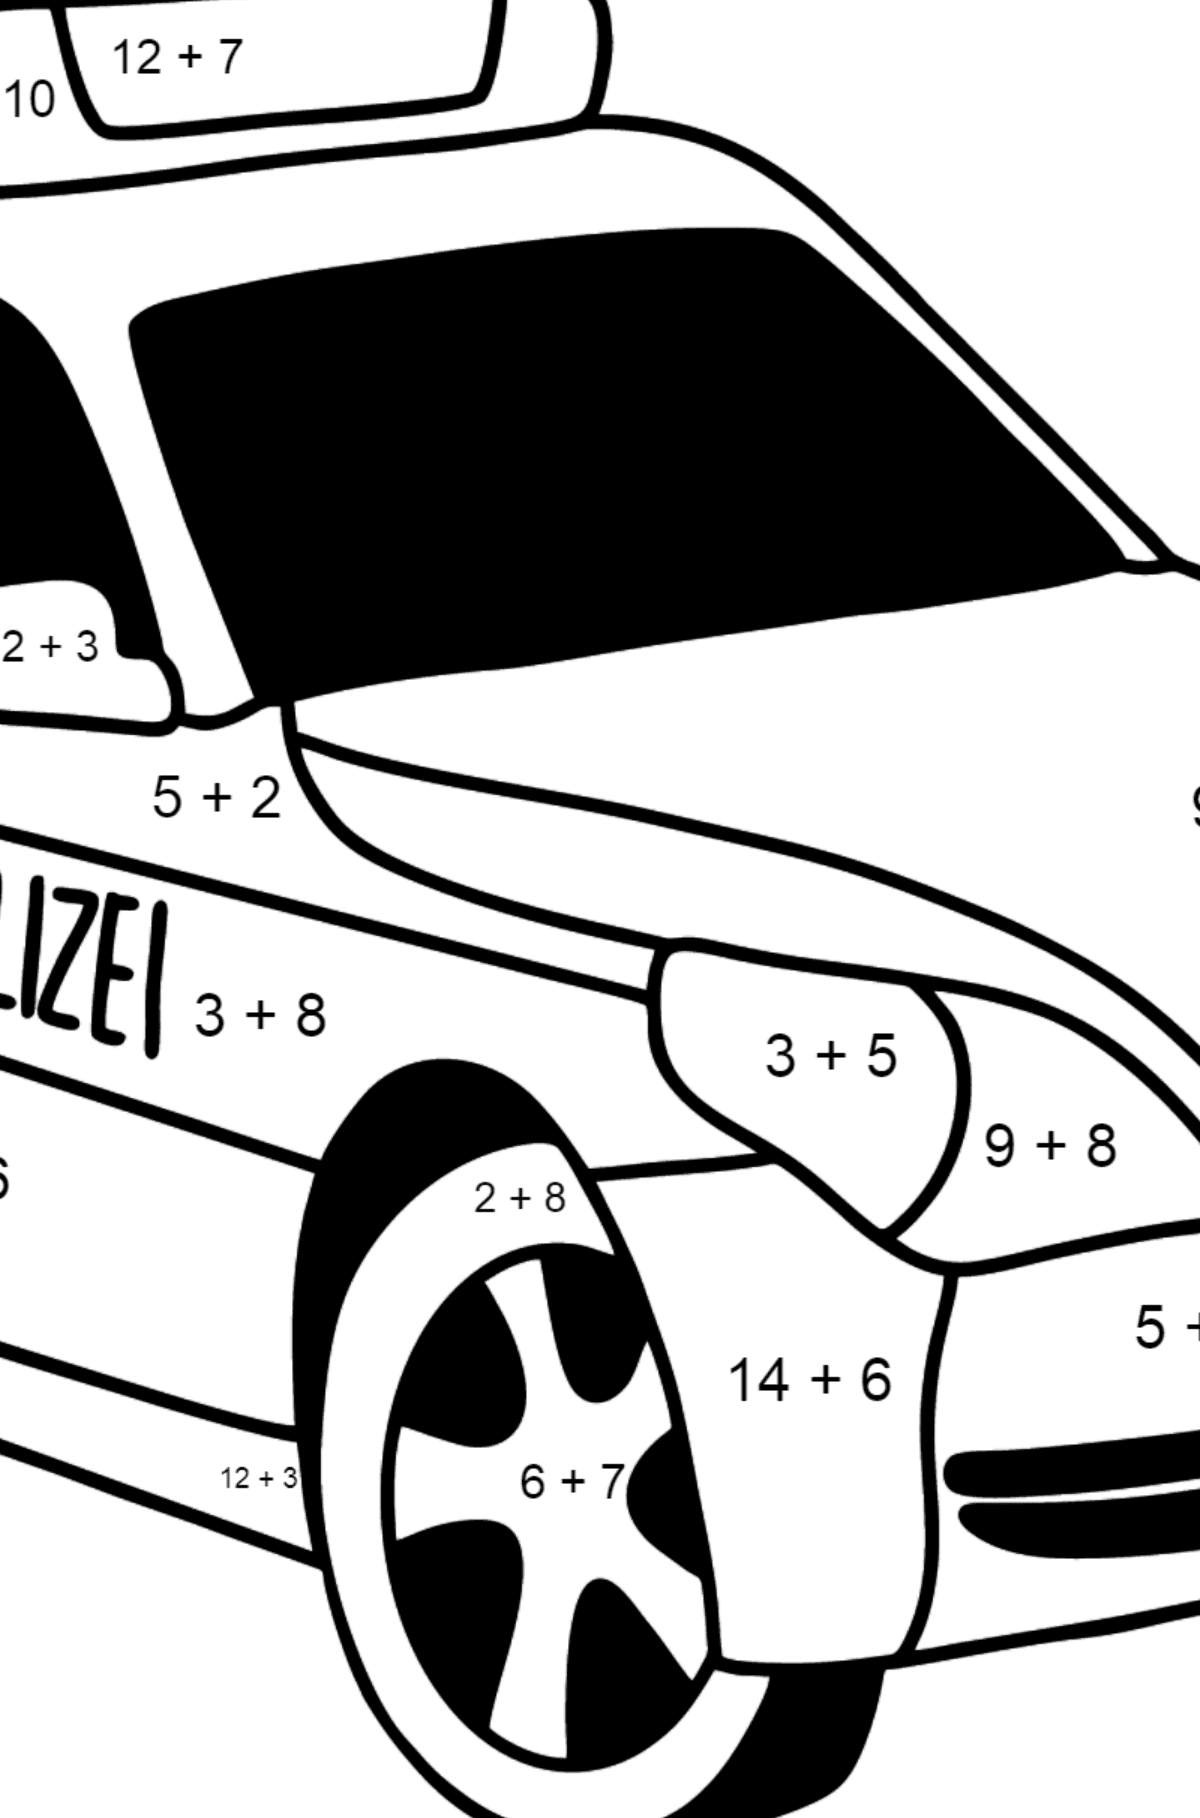 Police Car in Germany coloring page - Math Coloring - Addition for Kids